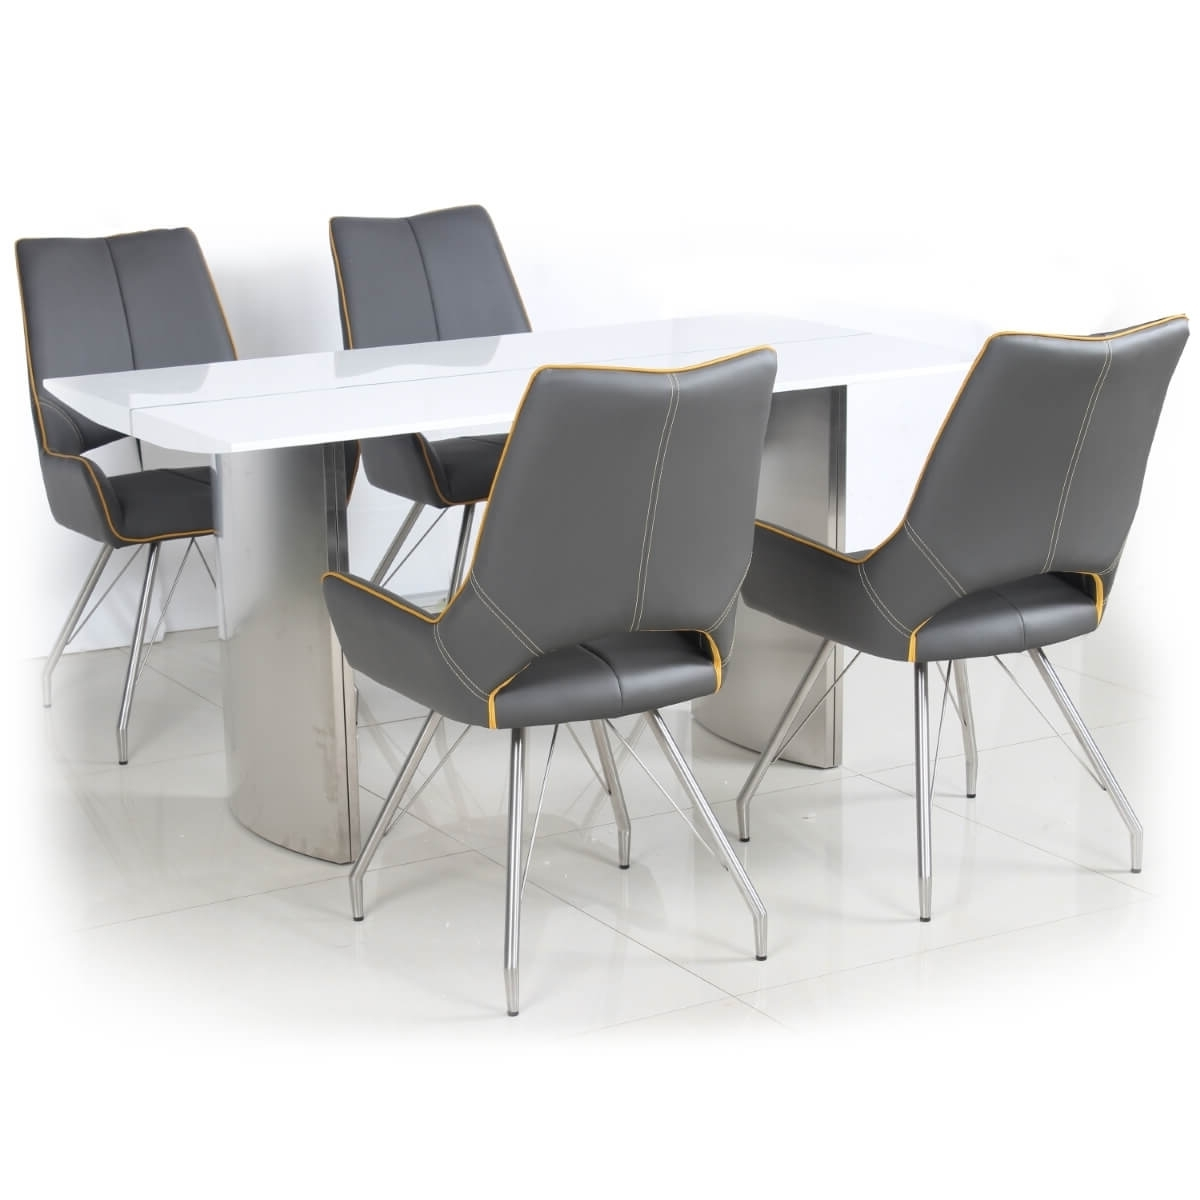 Most Recent Gloss Dining Sets Intended For Dining Set – White High Gloss Dining Table And 4 Grey Dining Chairs (View 22 of 25)